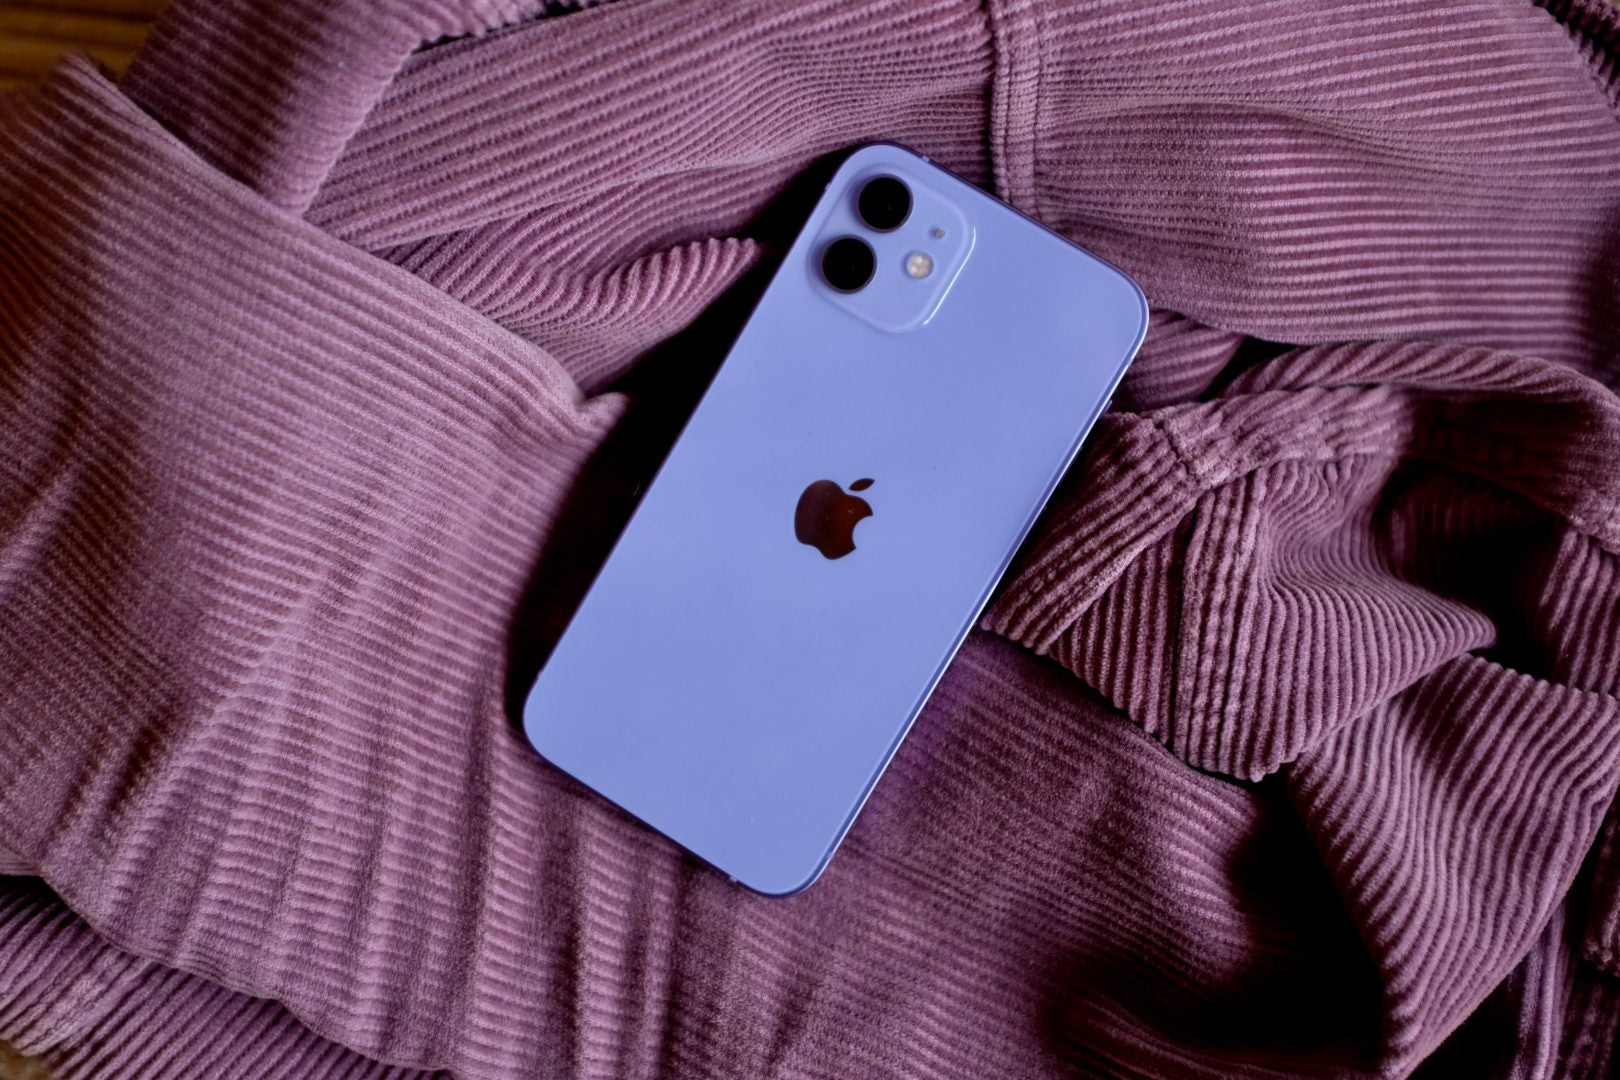 This is the Purple iPhone 12 – and it looks great